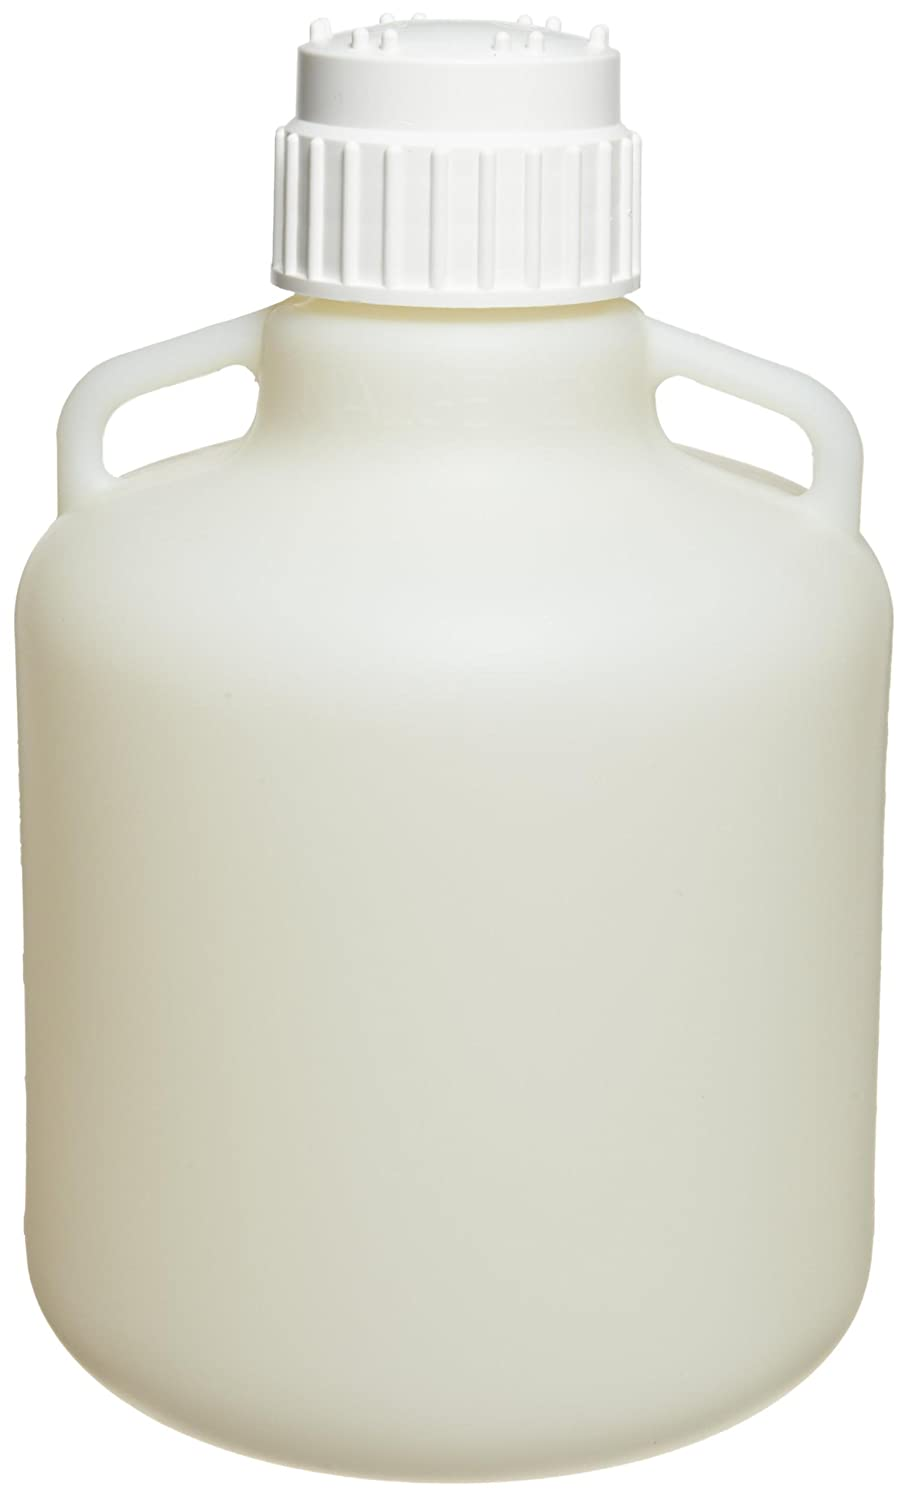 famous Nalgene 2097-0020 Fluorinated HDPE Large discharge sale Carboy with Polypr and Handle